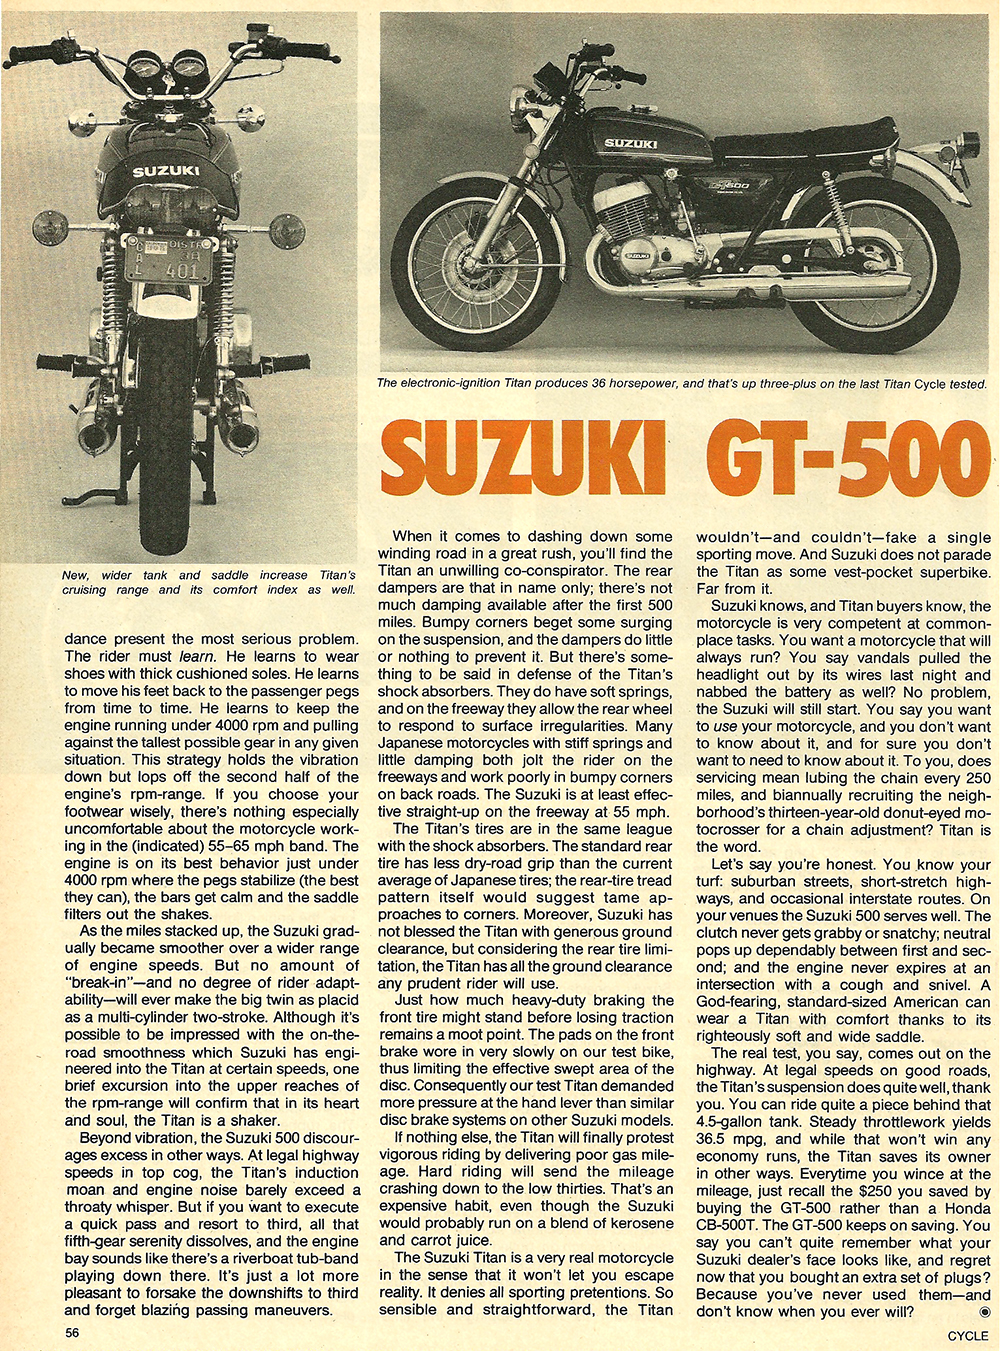 1976 Suzuki GT500 road test 5.jpg